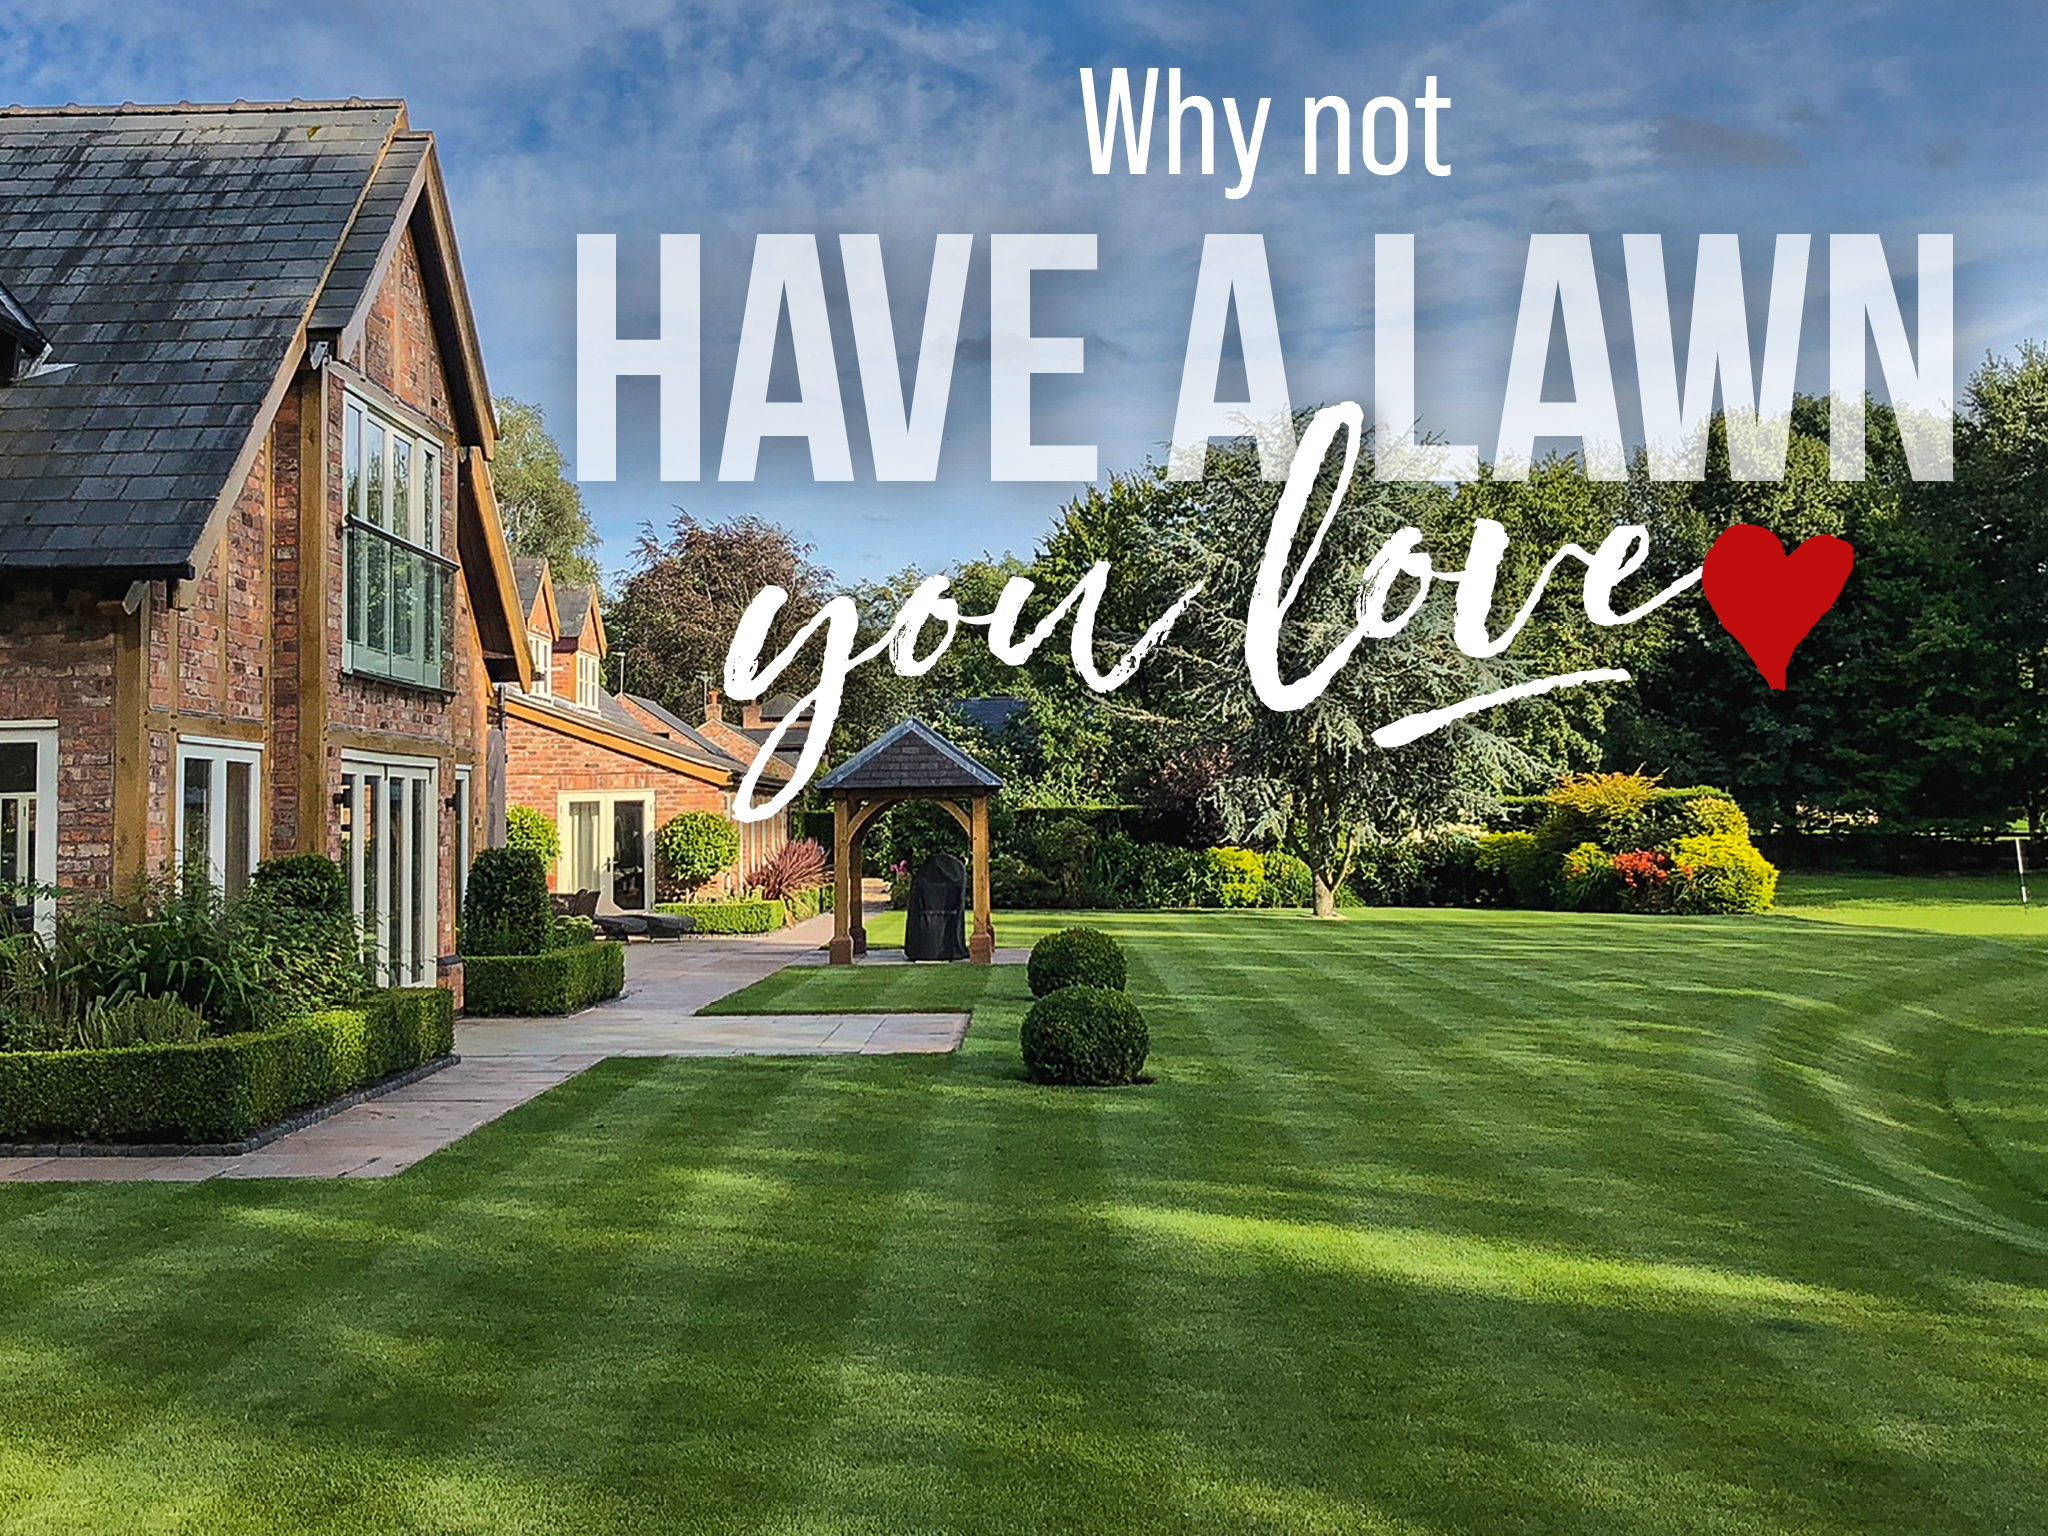 Graphic Design and printing for landscape gardening and lawncare